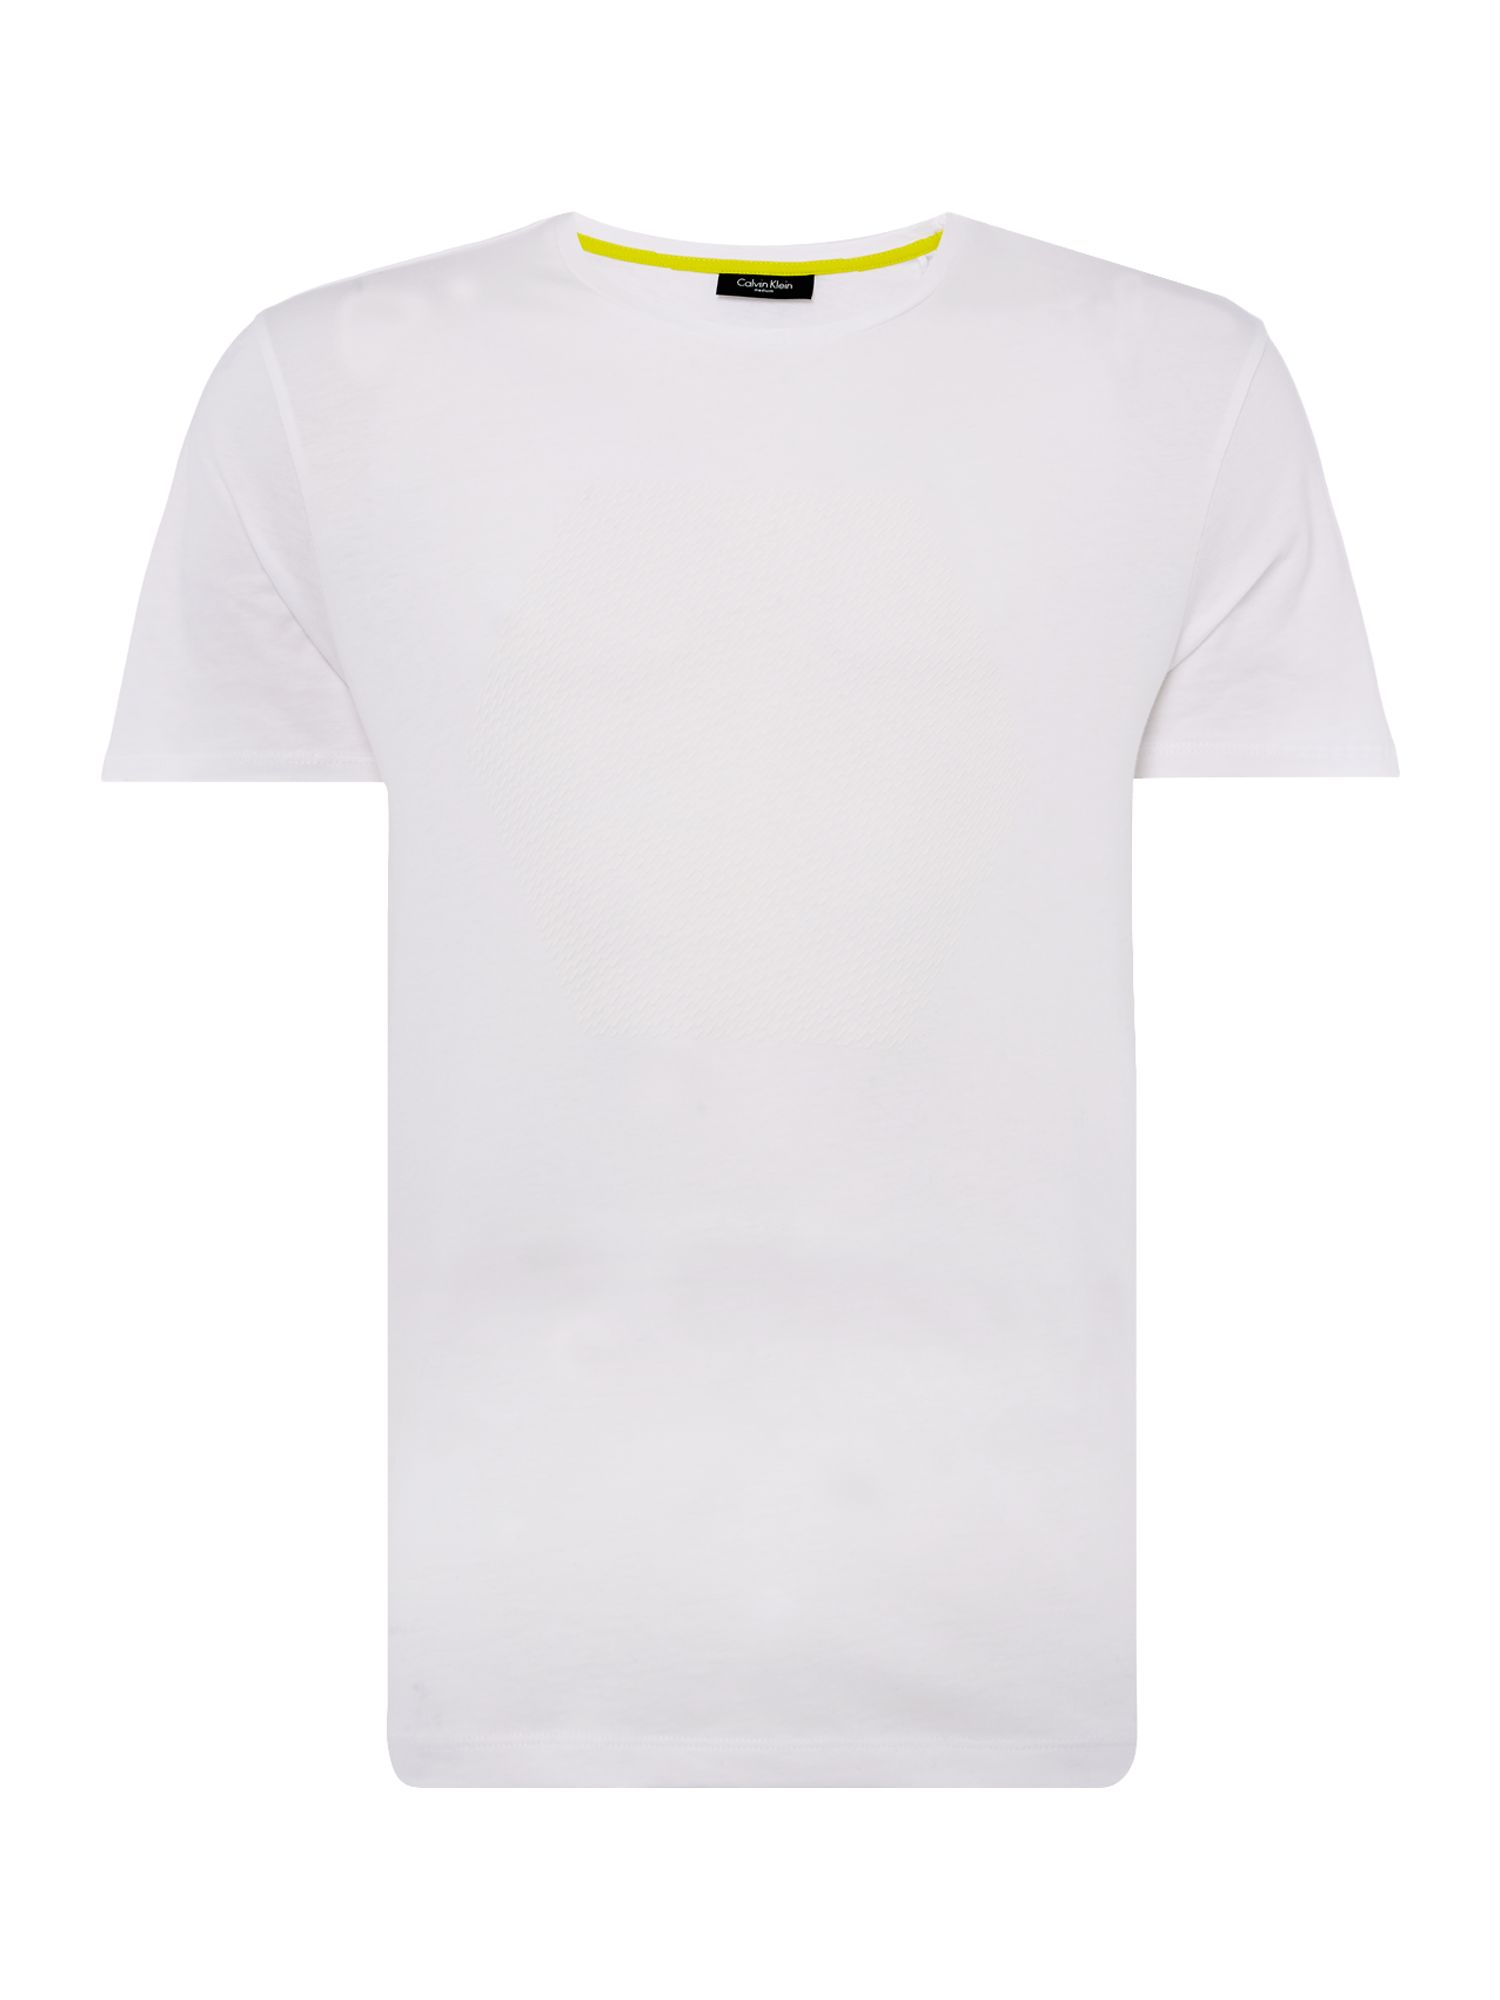 Men's Calvin Klein Jali Refined Cotton T-shirt, White